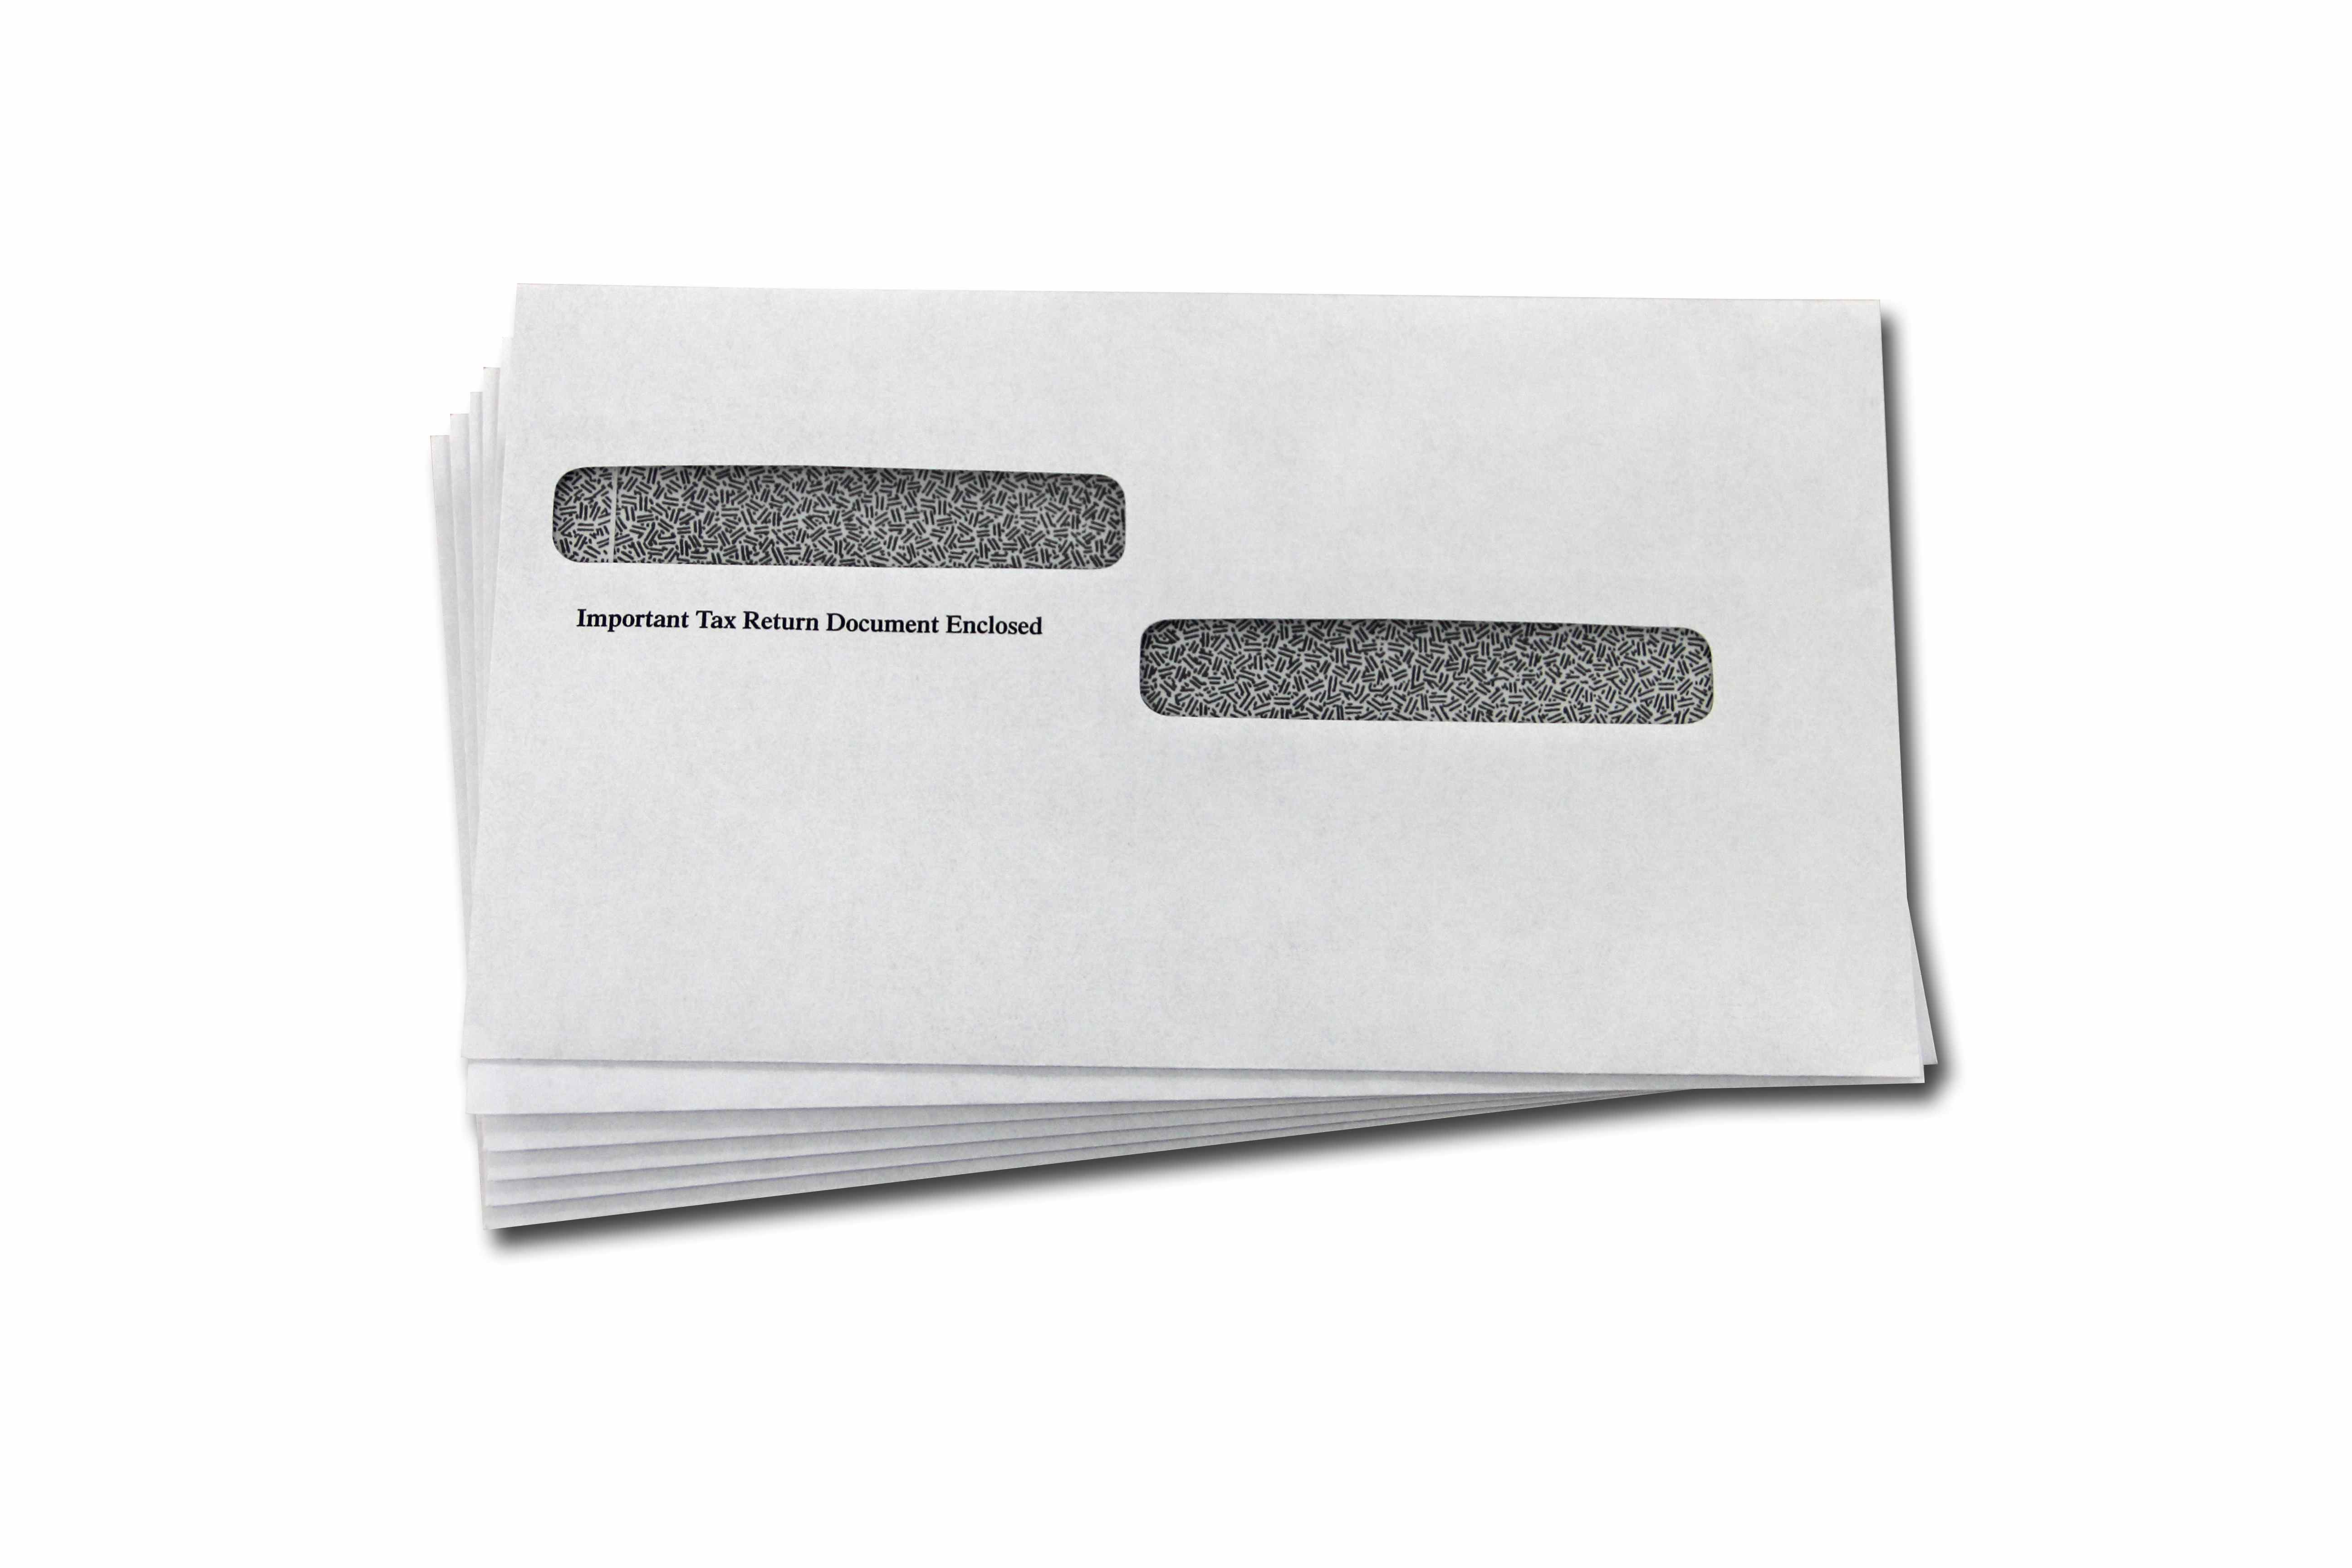 5.625 x 9.5, Side by Side Window, Gummed, White W-2 Envelopes with Tint